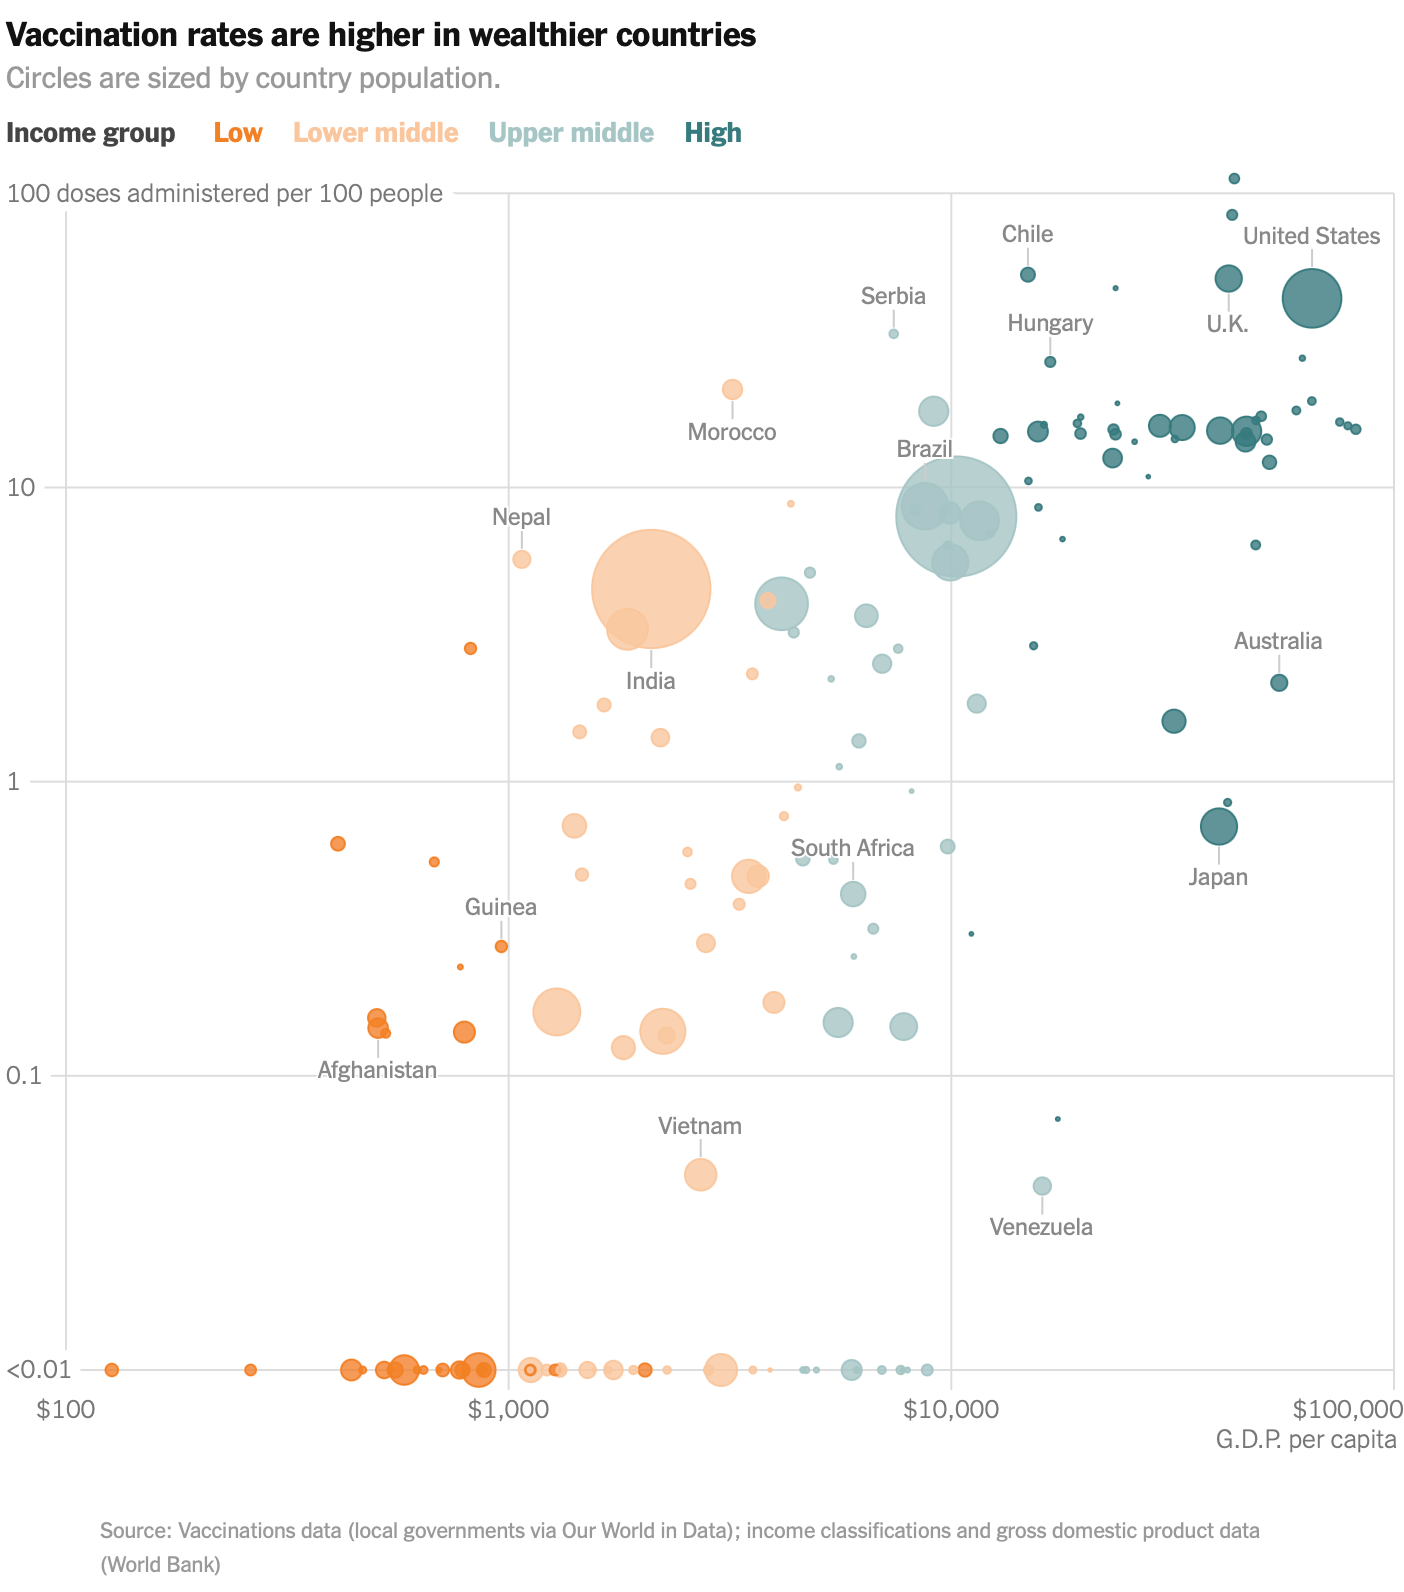 GDP and vaccination rates